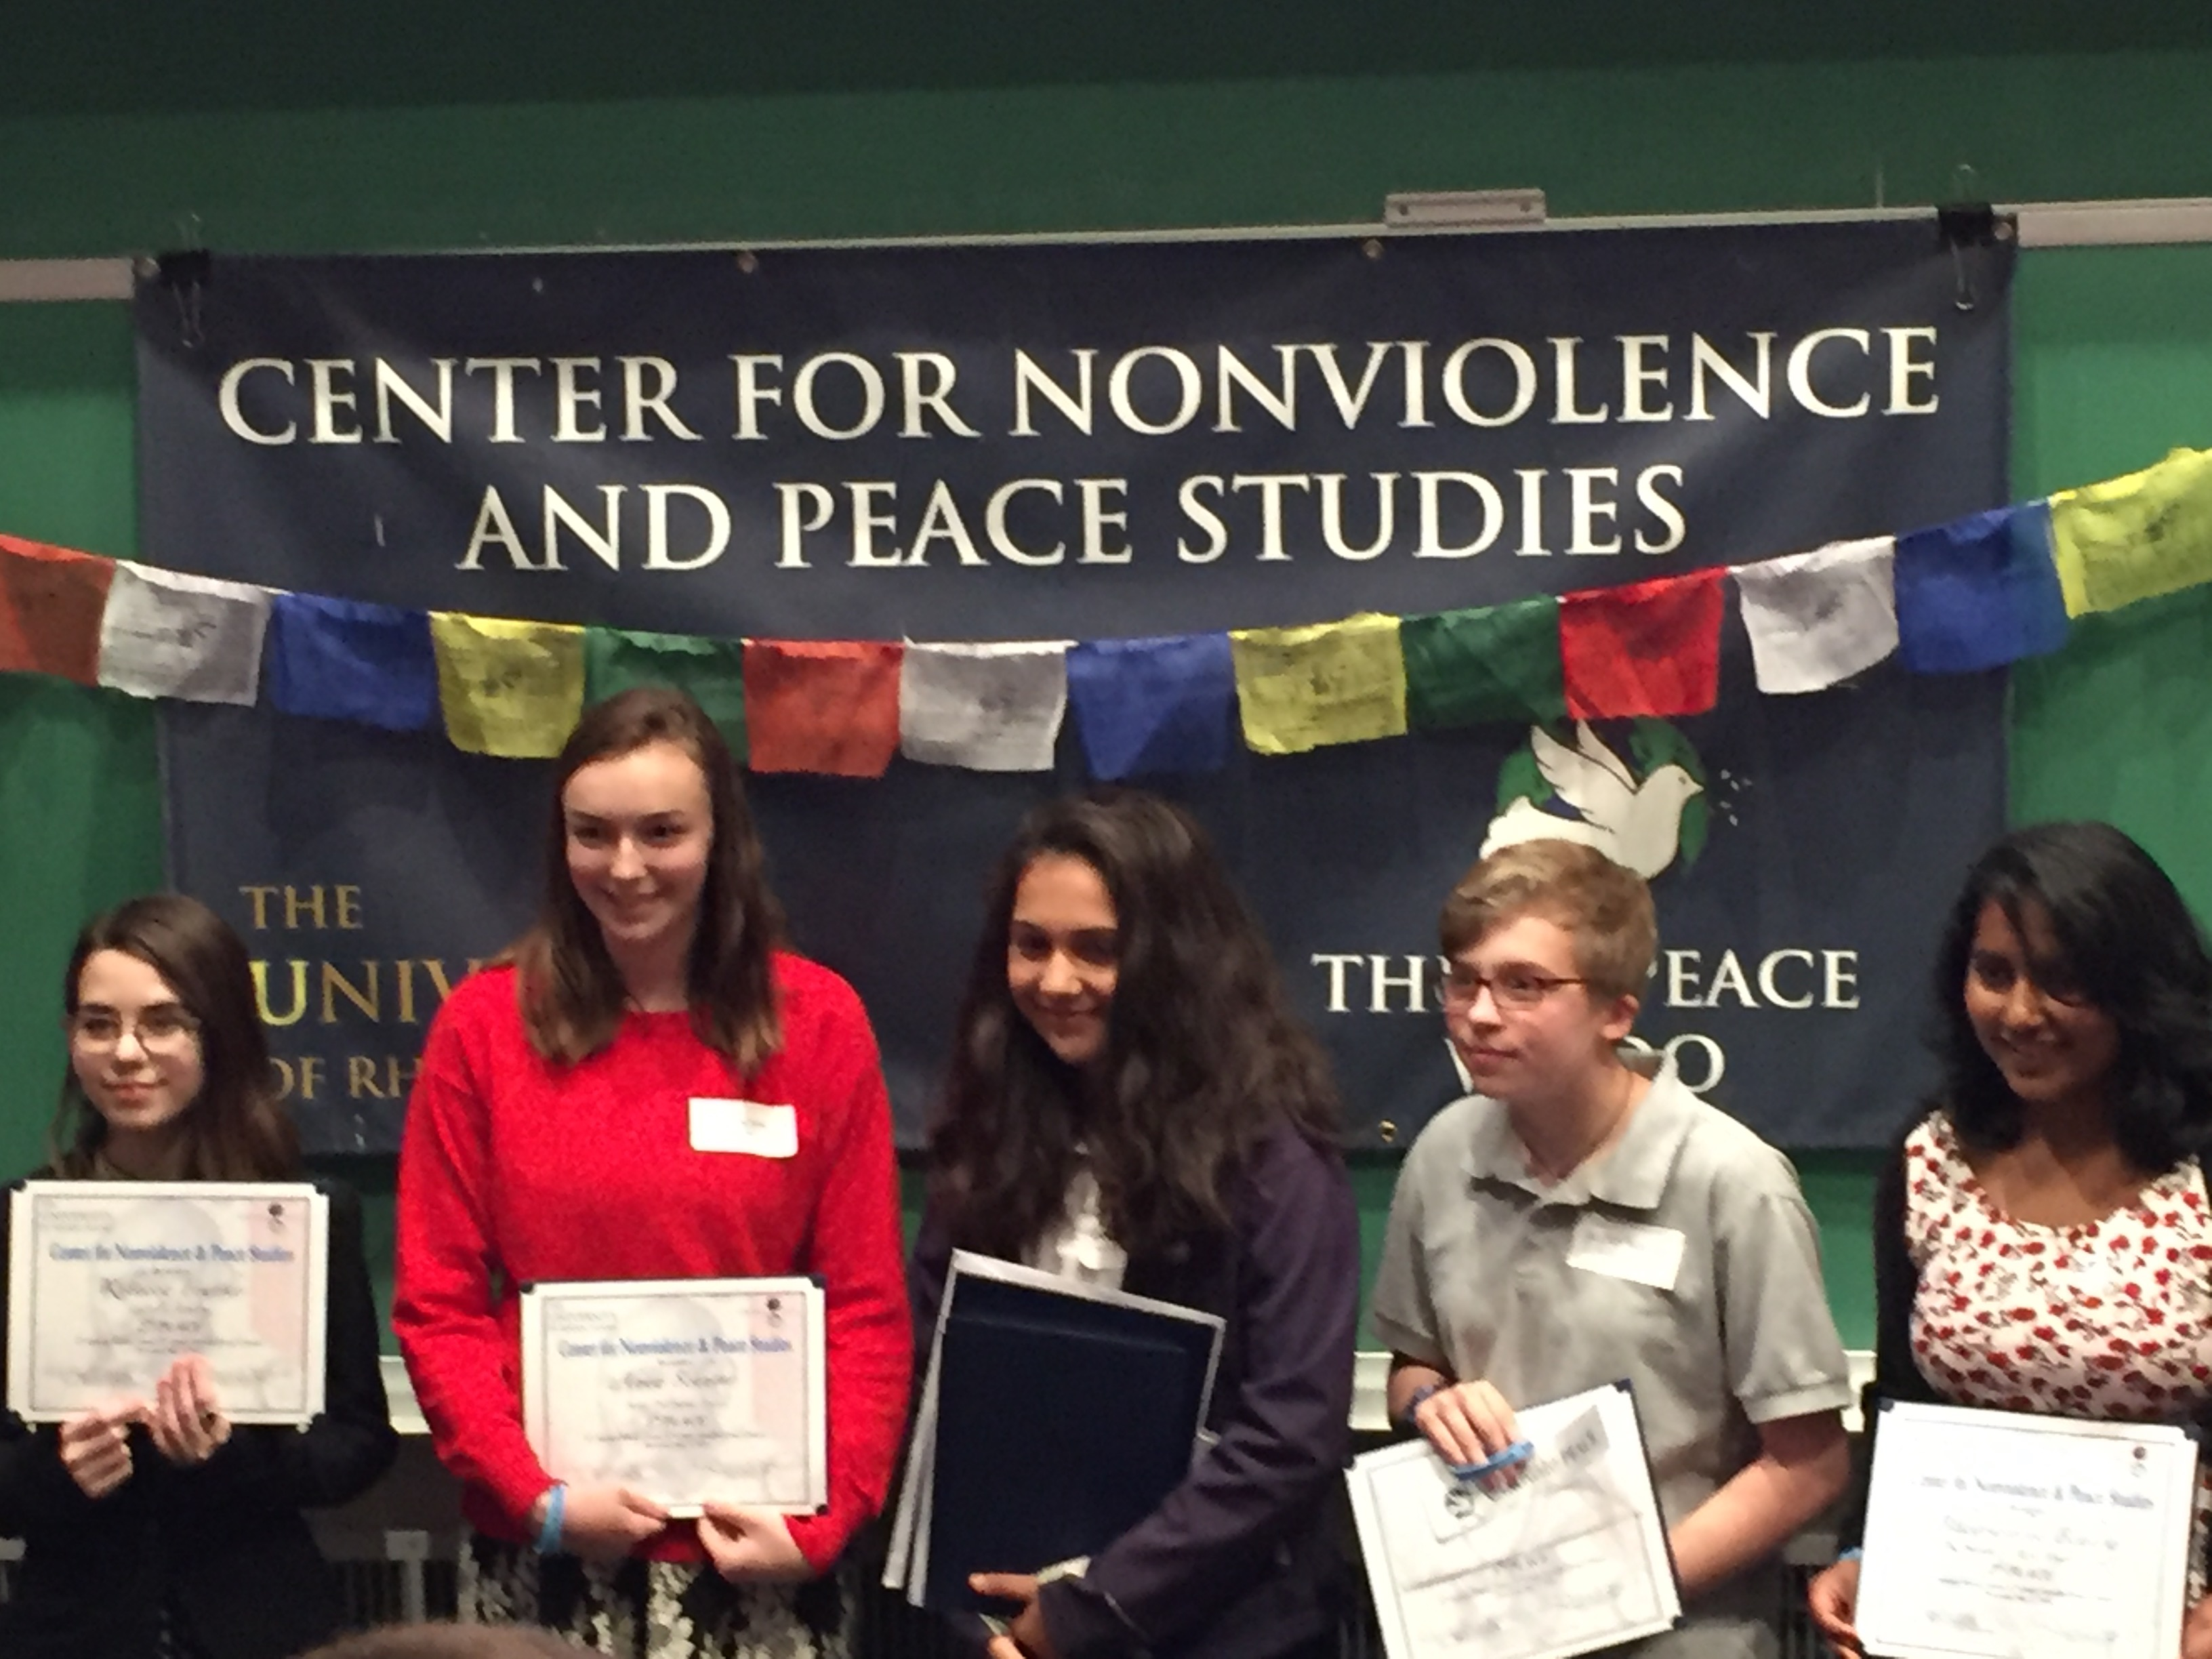 gandhi essay contest  6th annual ri 8th grade gandhi essay contest 2015 2016